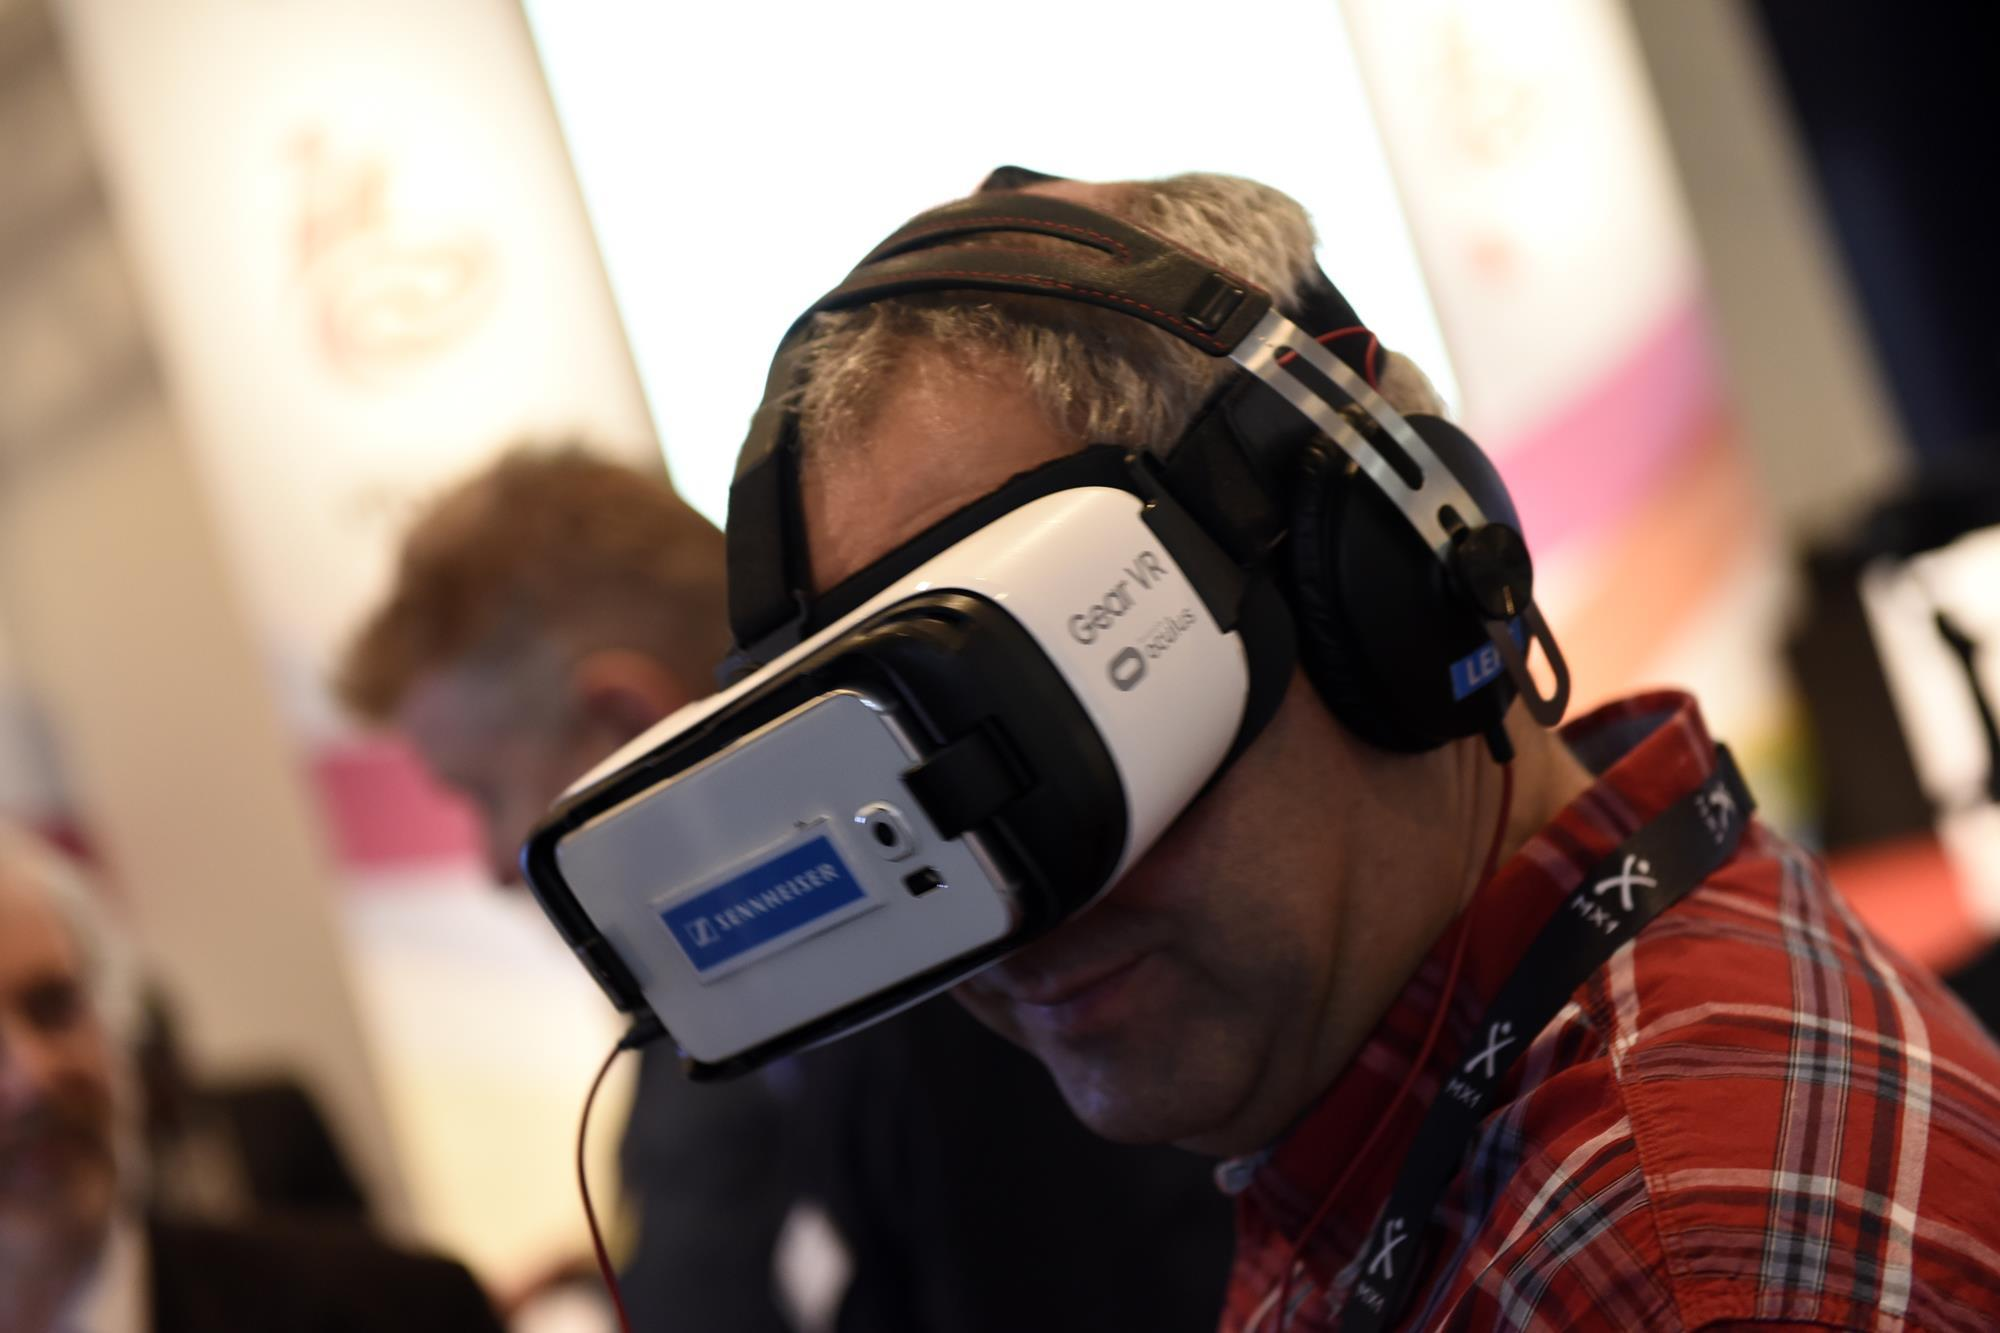 Analysis: What does the future hold for VR?